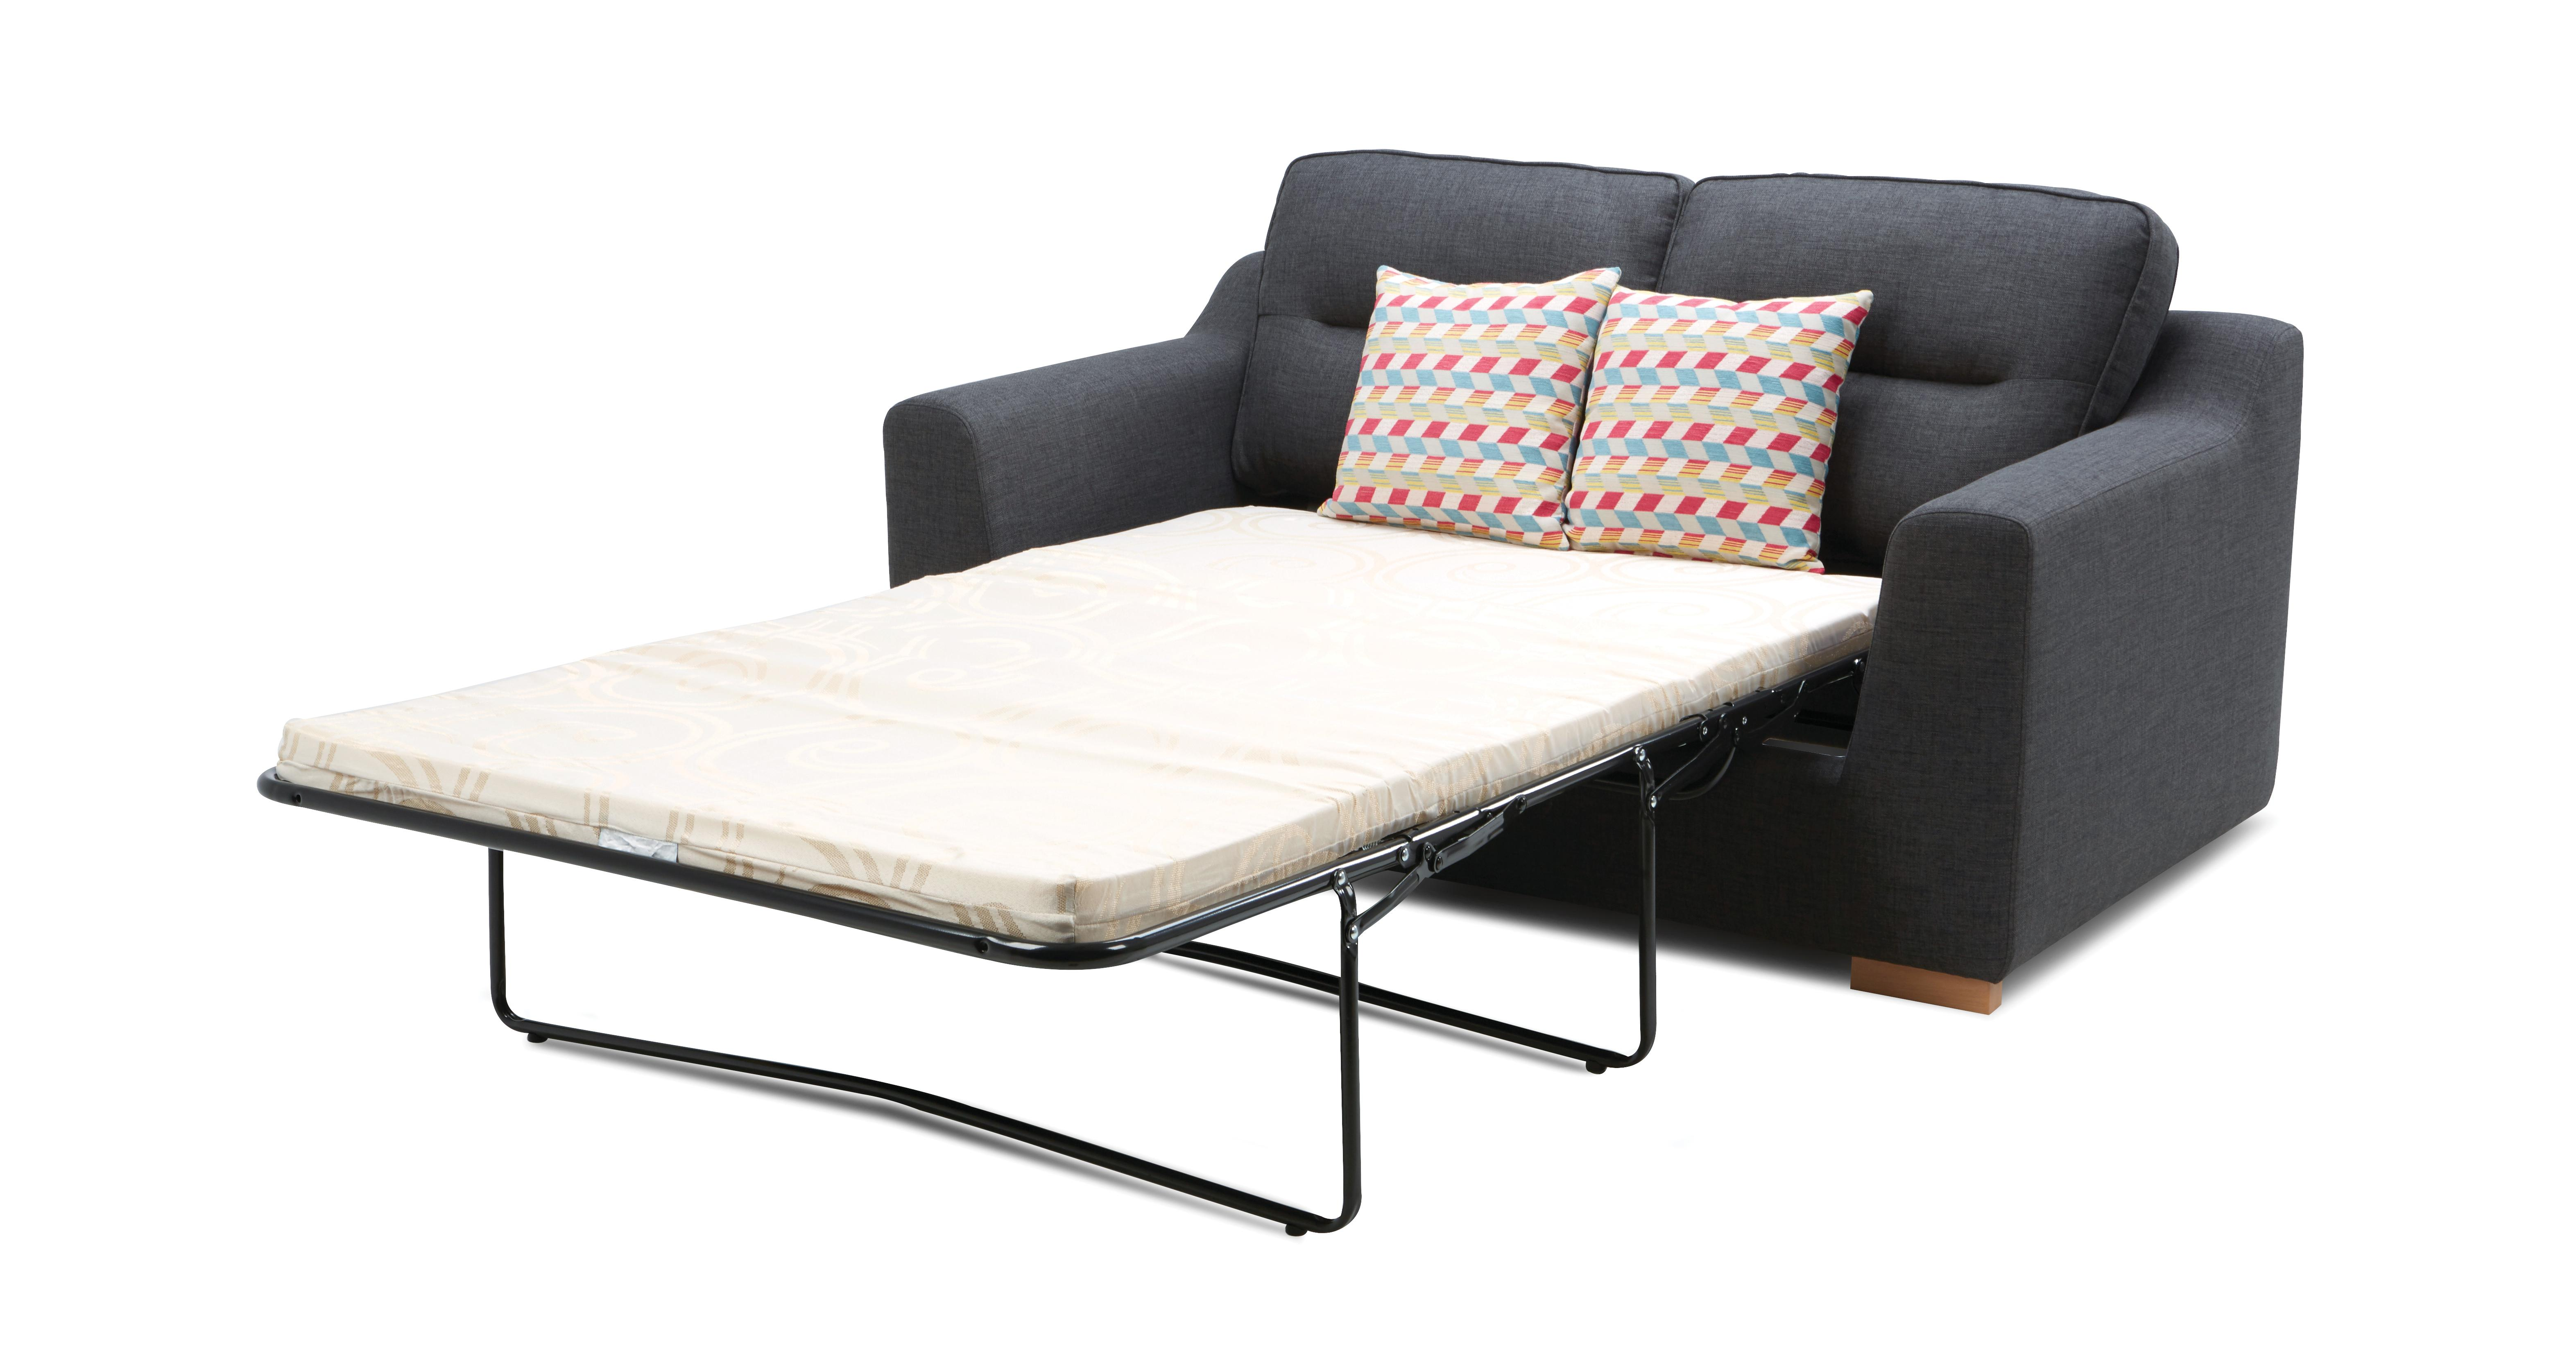 Sasta Large 2 Seater Sofa Bed Revive DFS